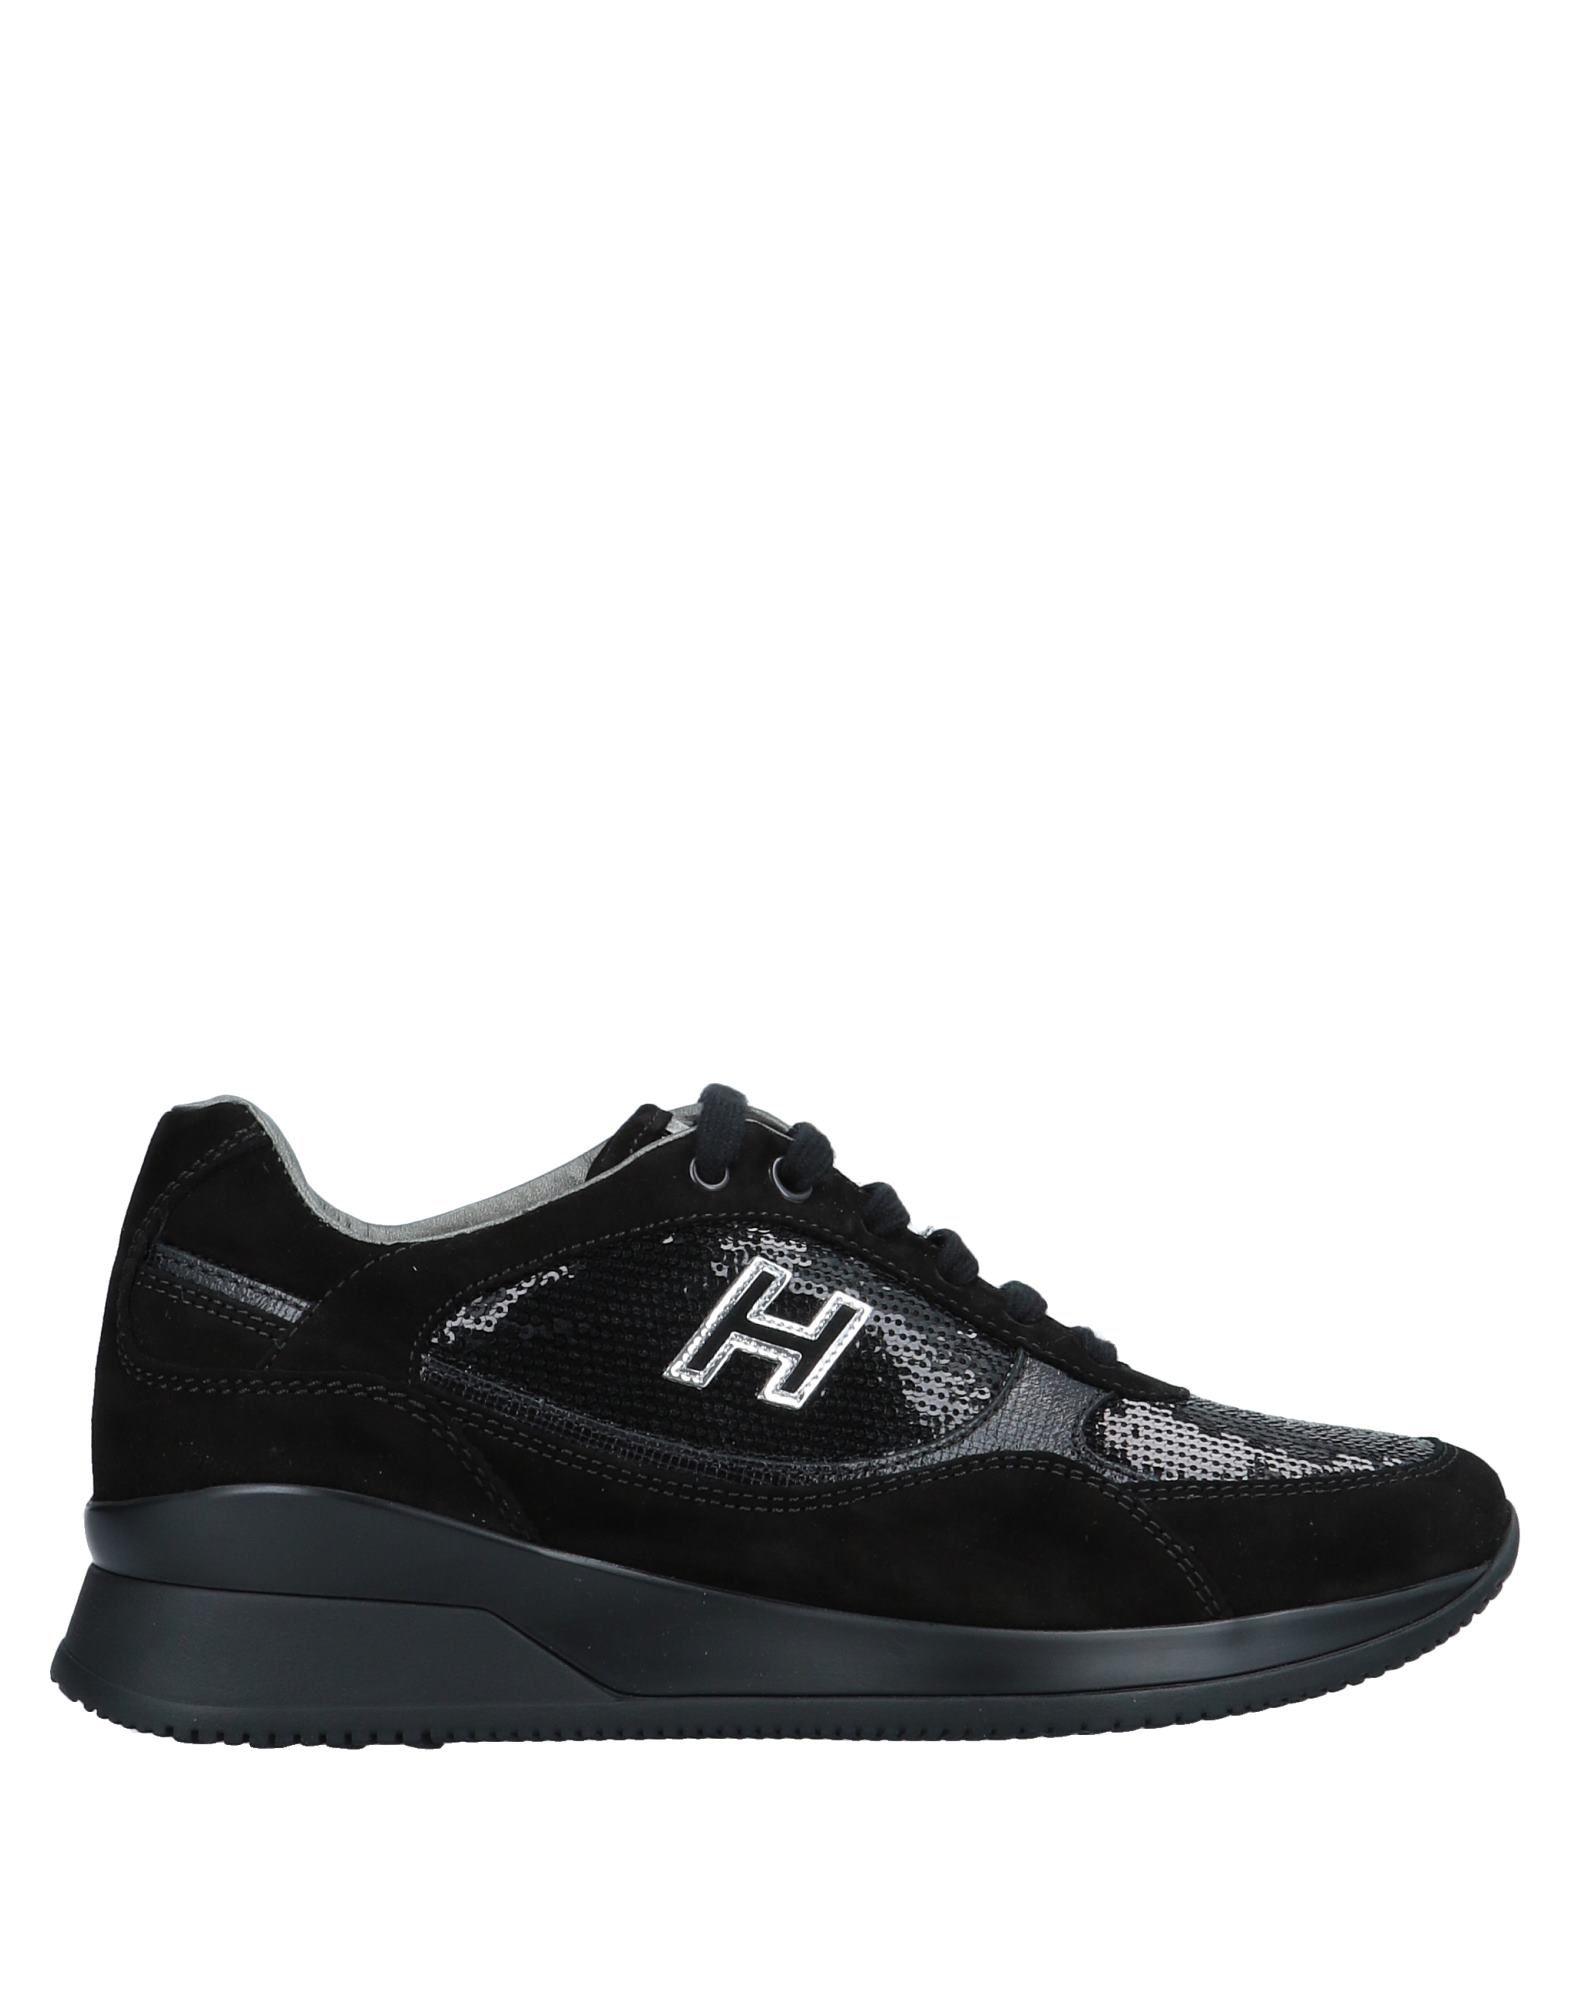 Hogan Sneakers - Women Hogan Sneakers online on 11567832UF  United Kingdom - 11567832UF on 3bae7a